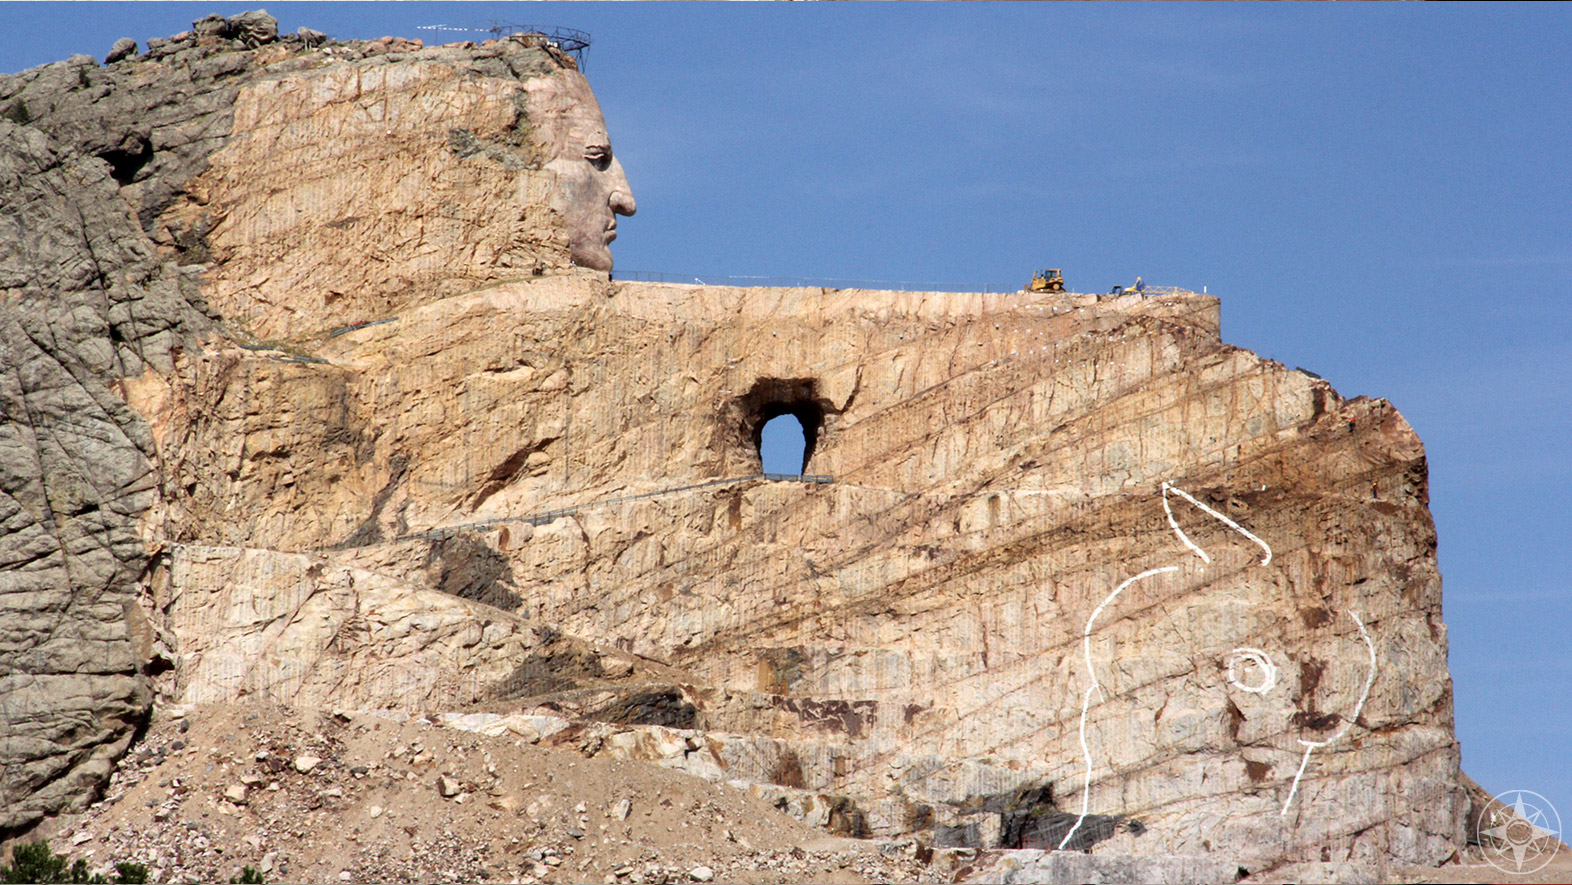 Closer look and a sense of scale, world's largest monument features North American Indian in South Dakota